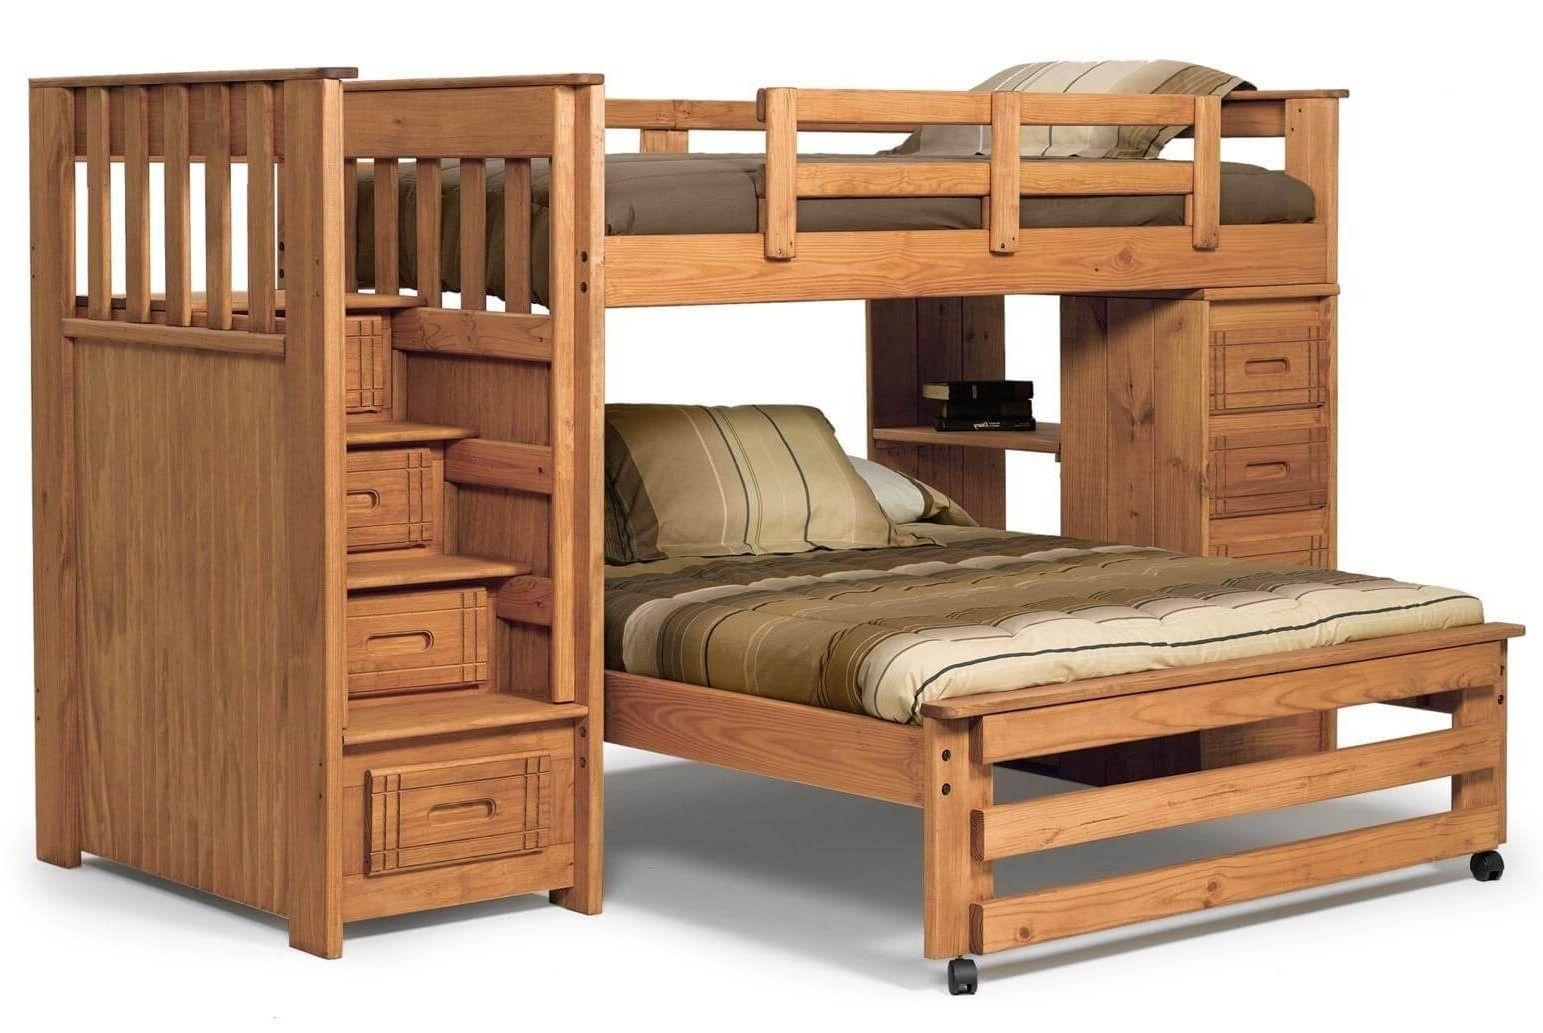 Loft bed twin over queen   Interesting L Shaped Bunk Beds Design Ideas Youull Love  Queen